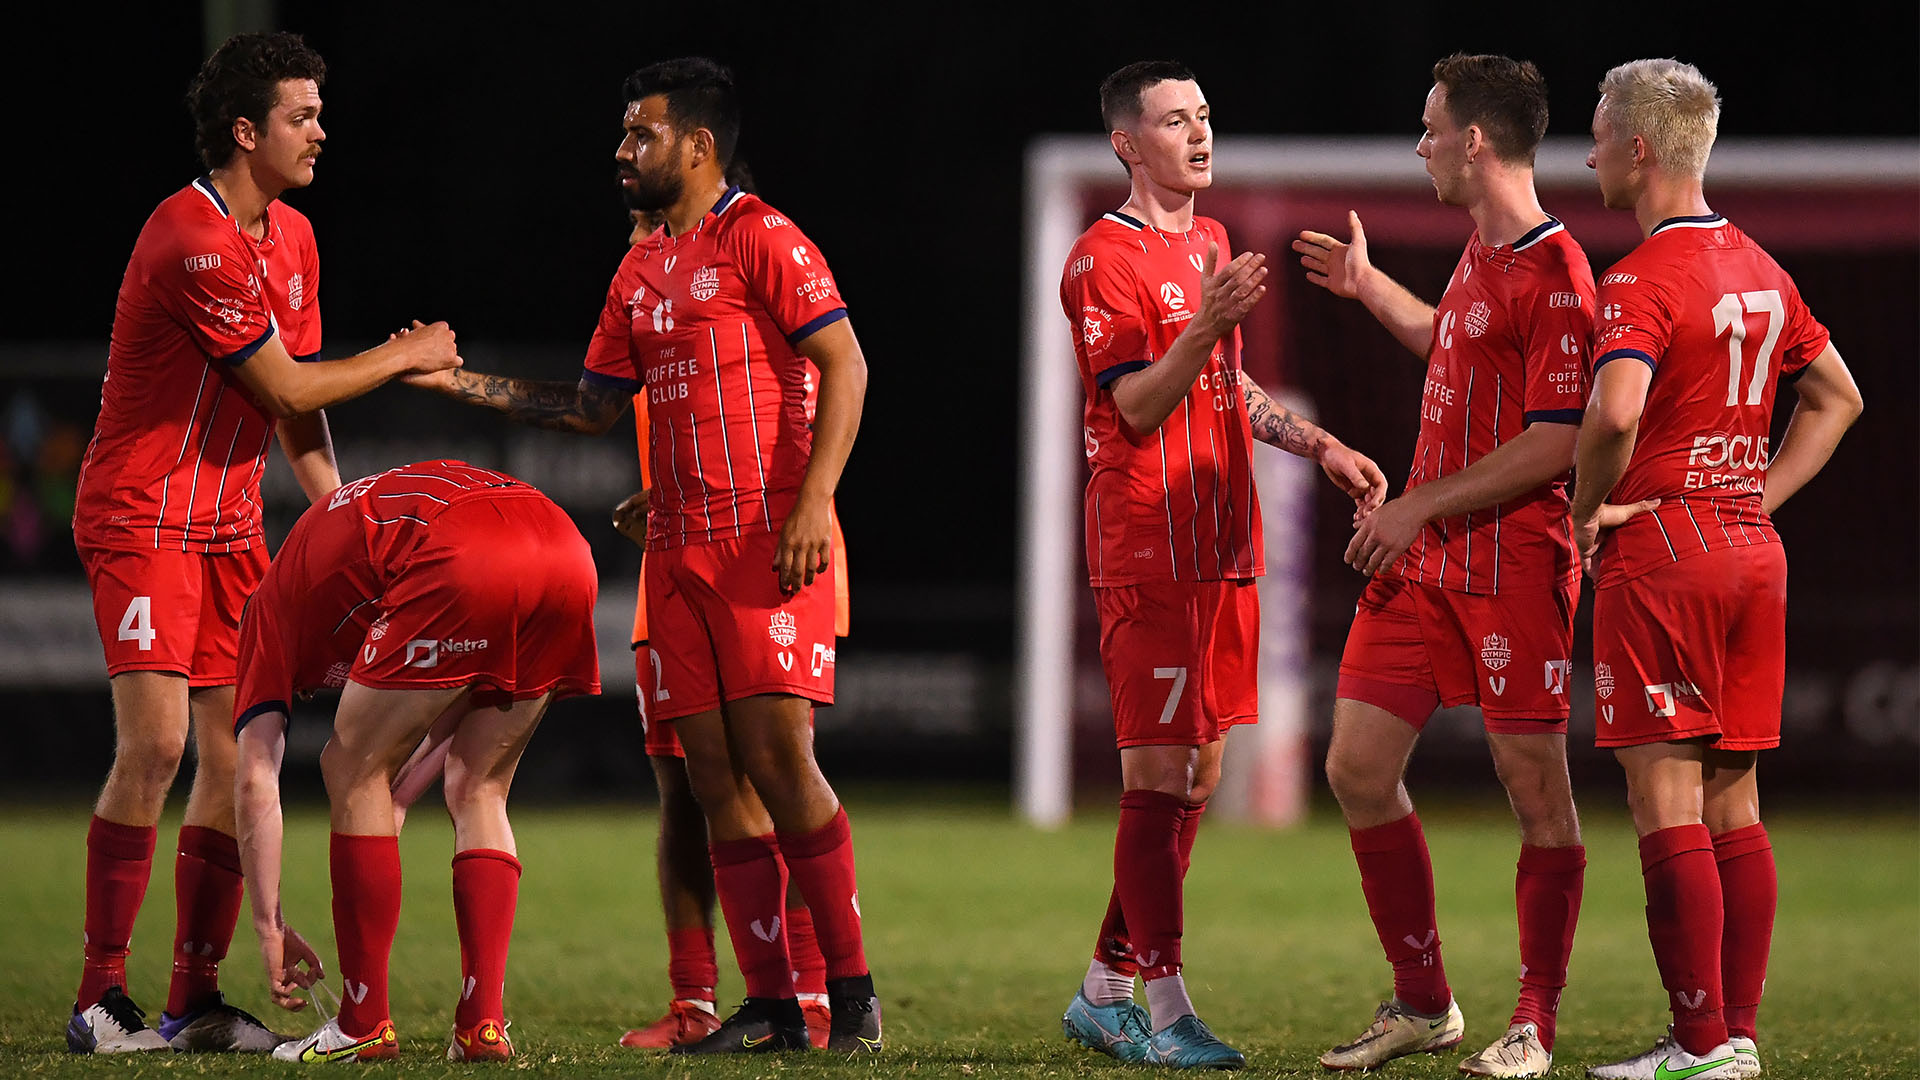 Match Wrap: Olympic FC 1-0 Magpies Crusaders